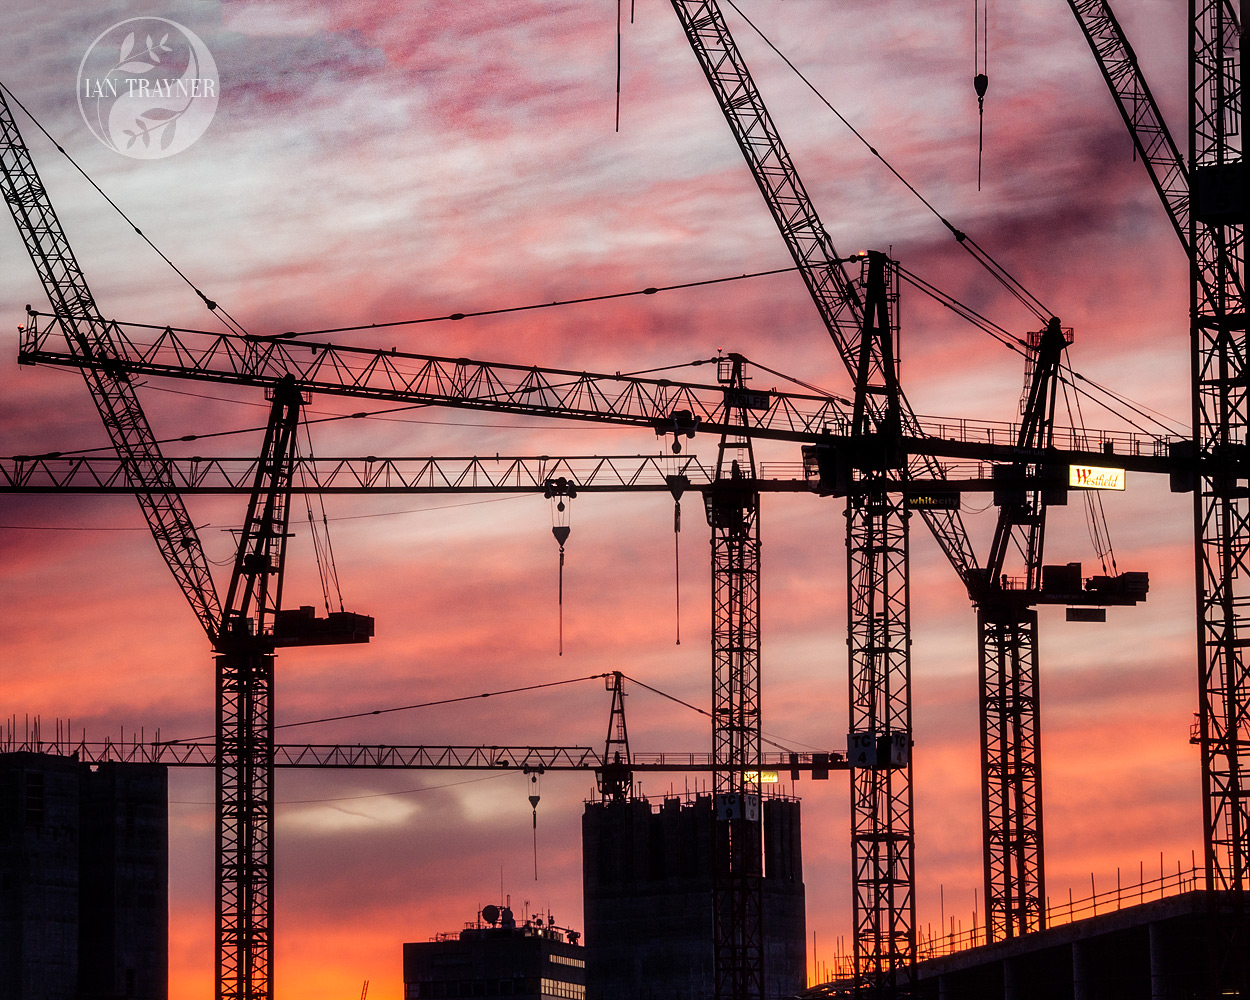 Detail of cranes during construction of the Westfield London shopping centre in Shepherd's Bush, London, in 2007. Photo by Ian Trayner.